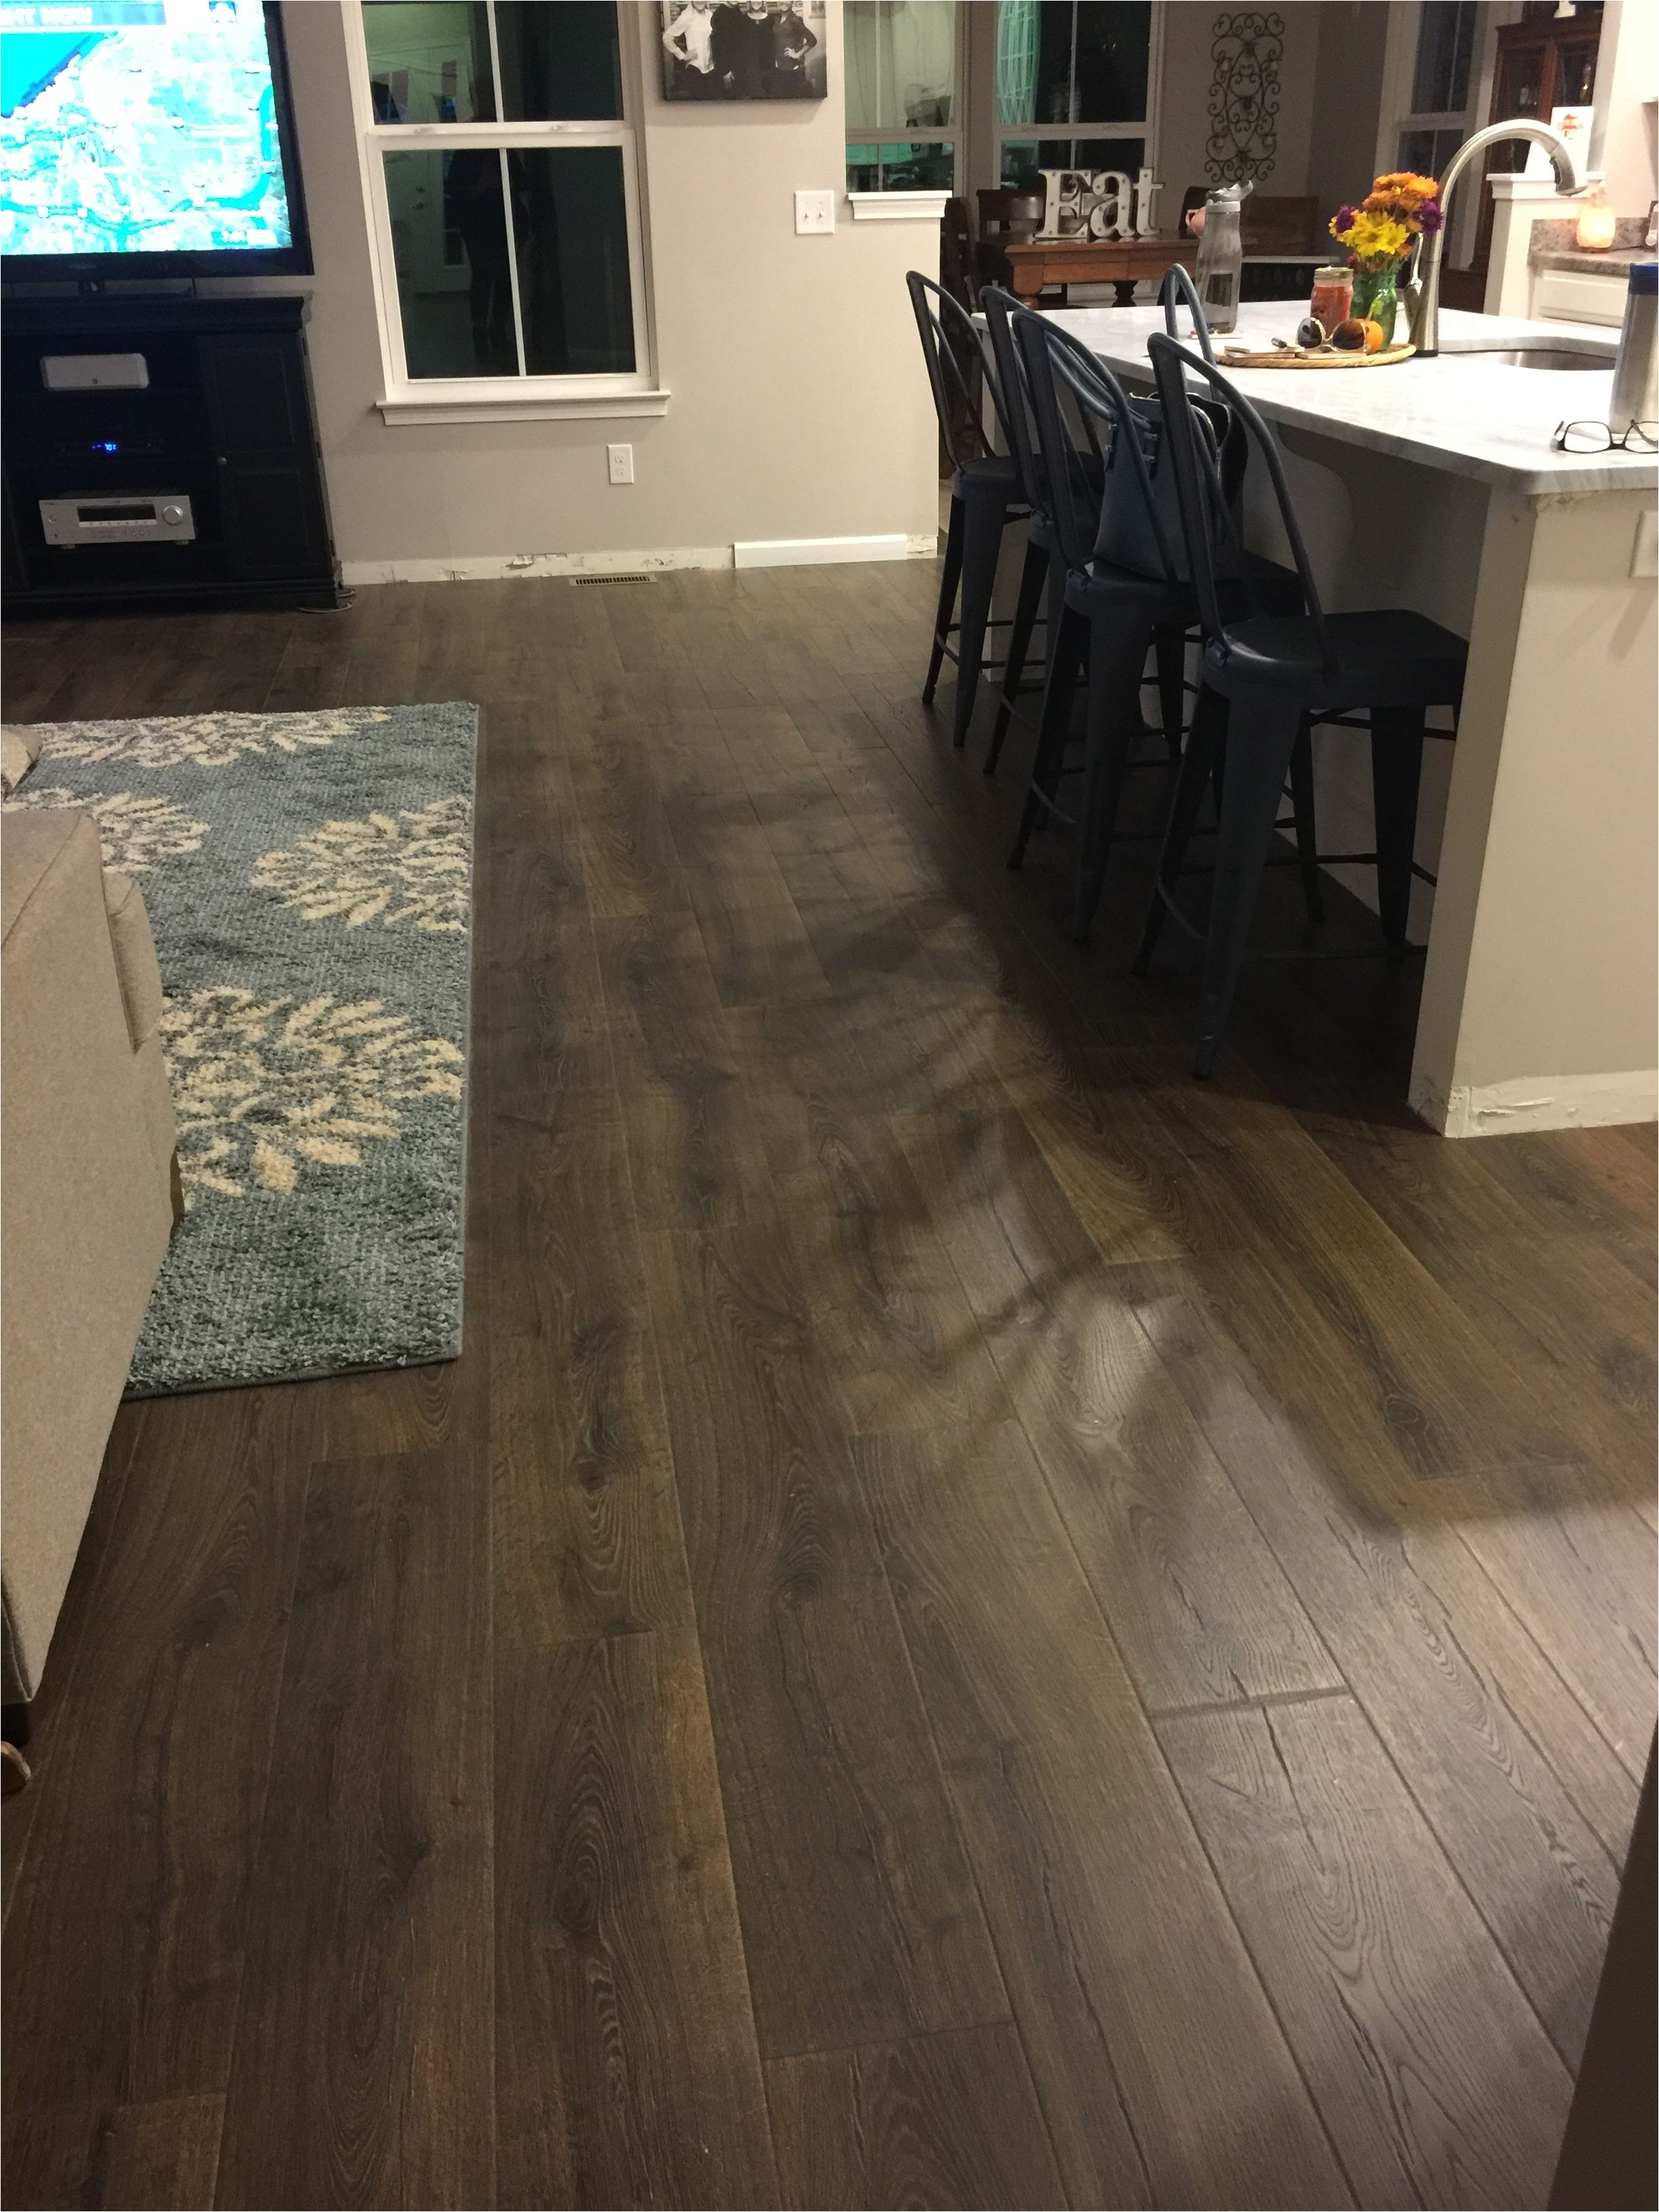 Is Pergo Laminate Flooring Made In the Usa Pergo Outlast Vintage tobacco Oak New House Updates Pinterest